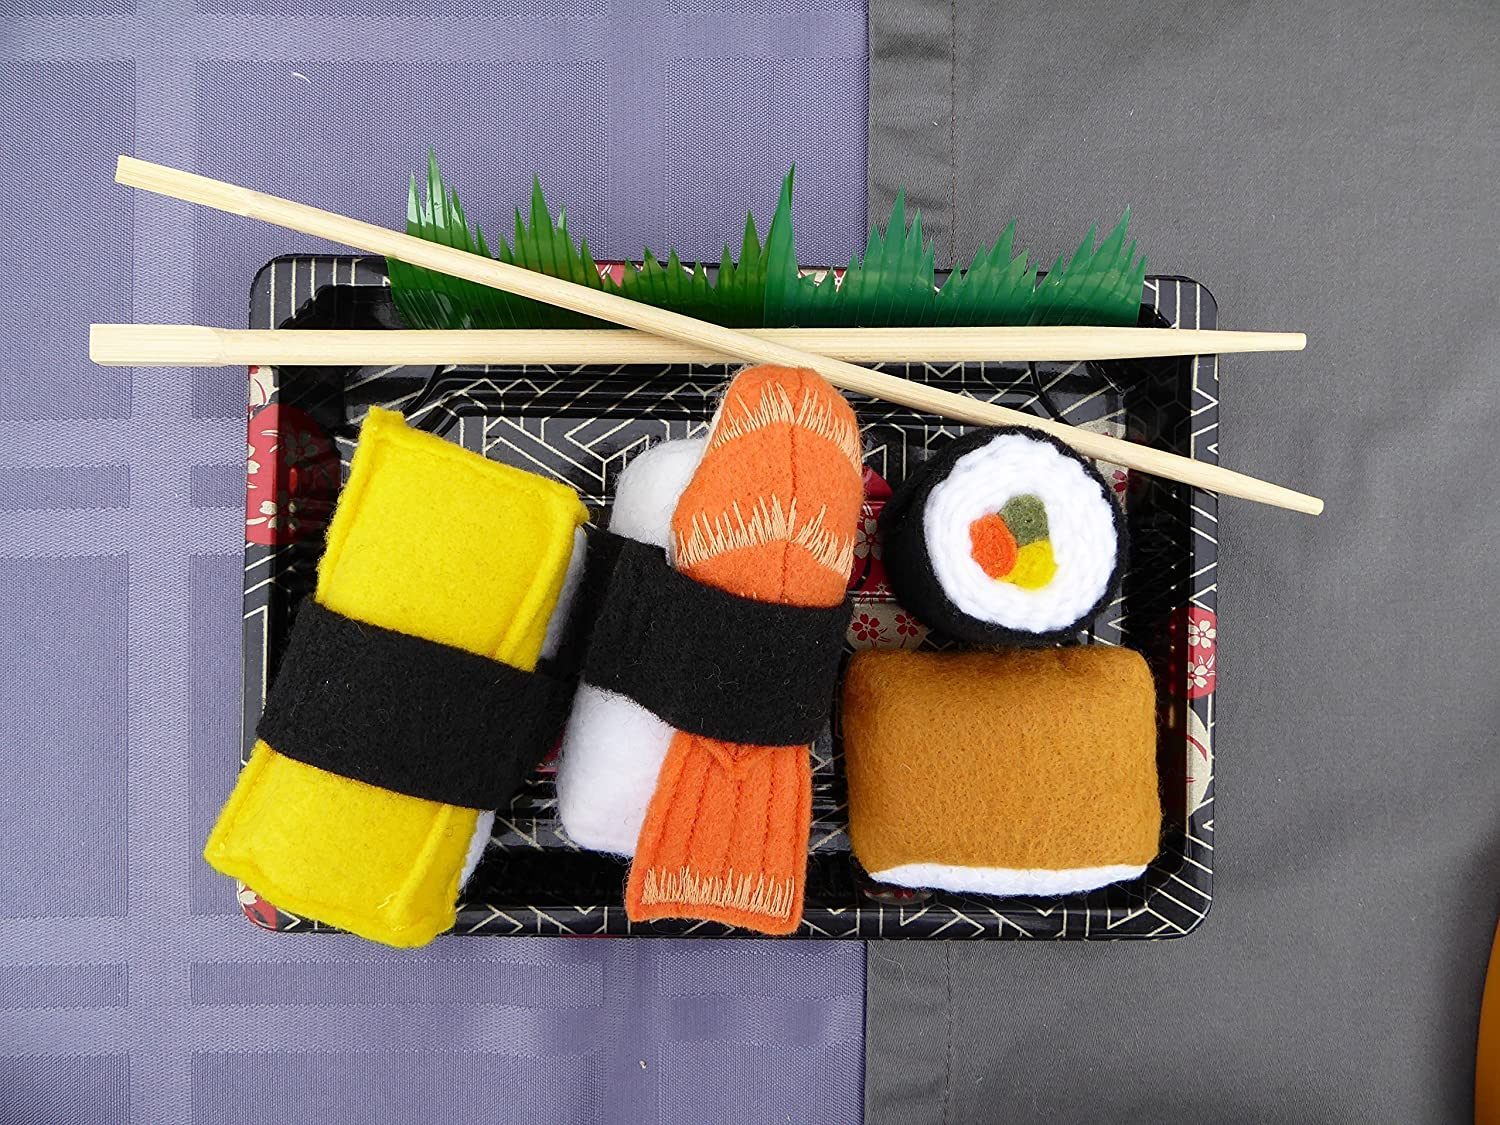 Felt Food Sushi Play Set 4 Piece Pretend Food Play Set, Unroll the Maki and re-roll, Take apart the Shrimp and Tamago, Inari